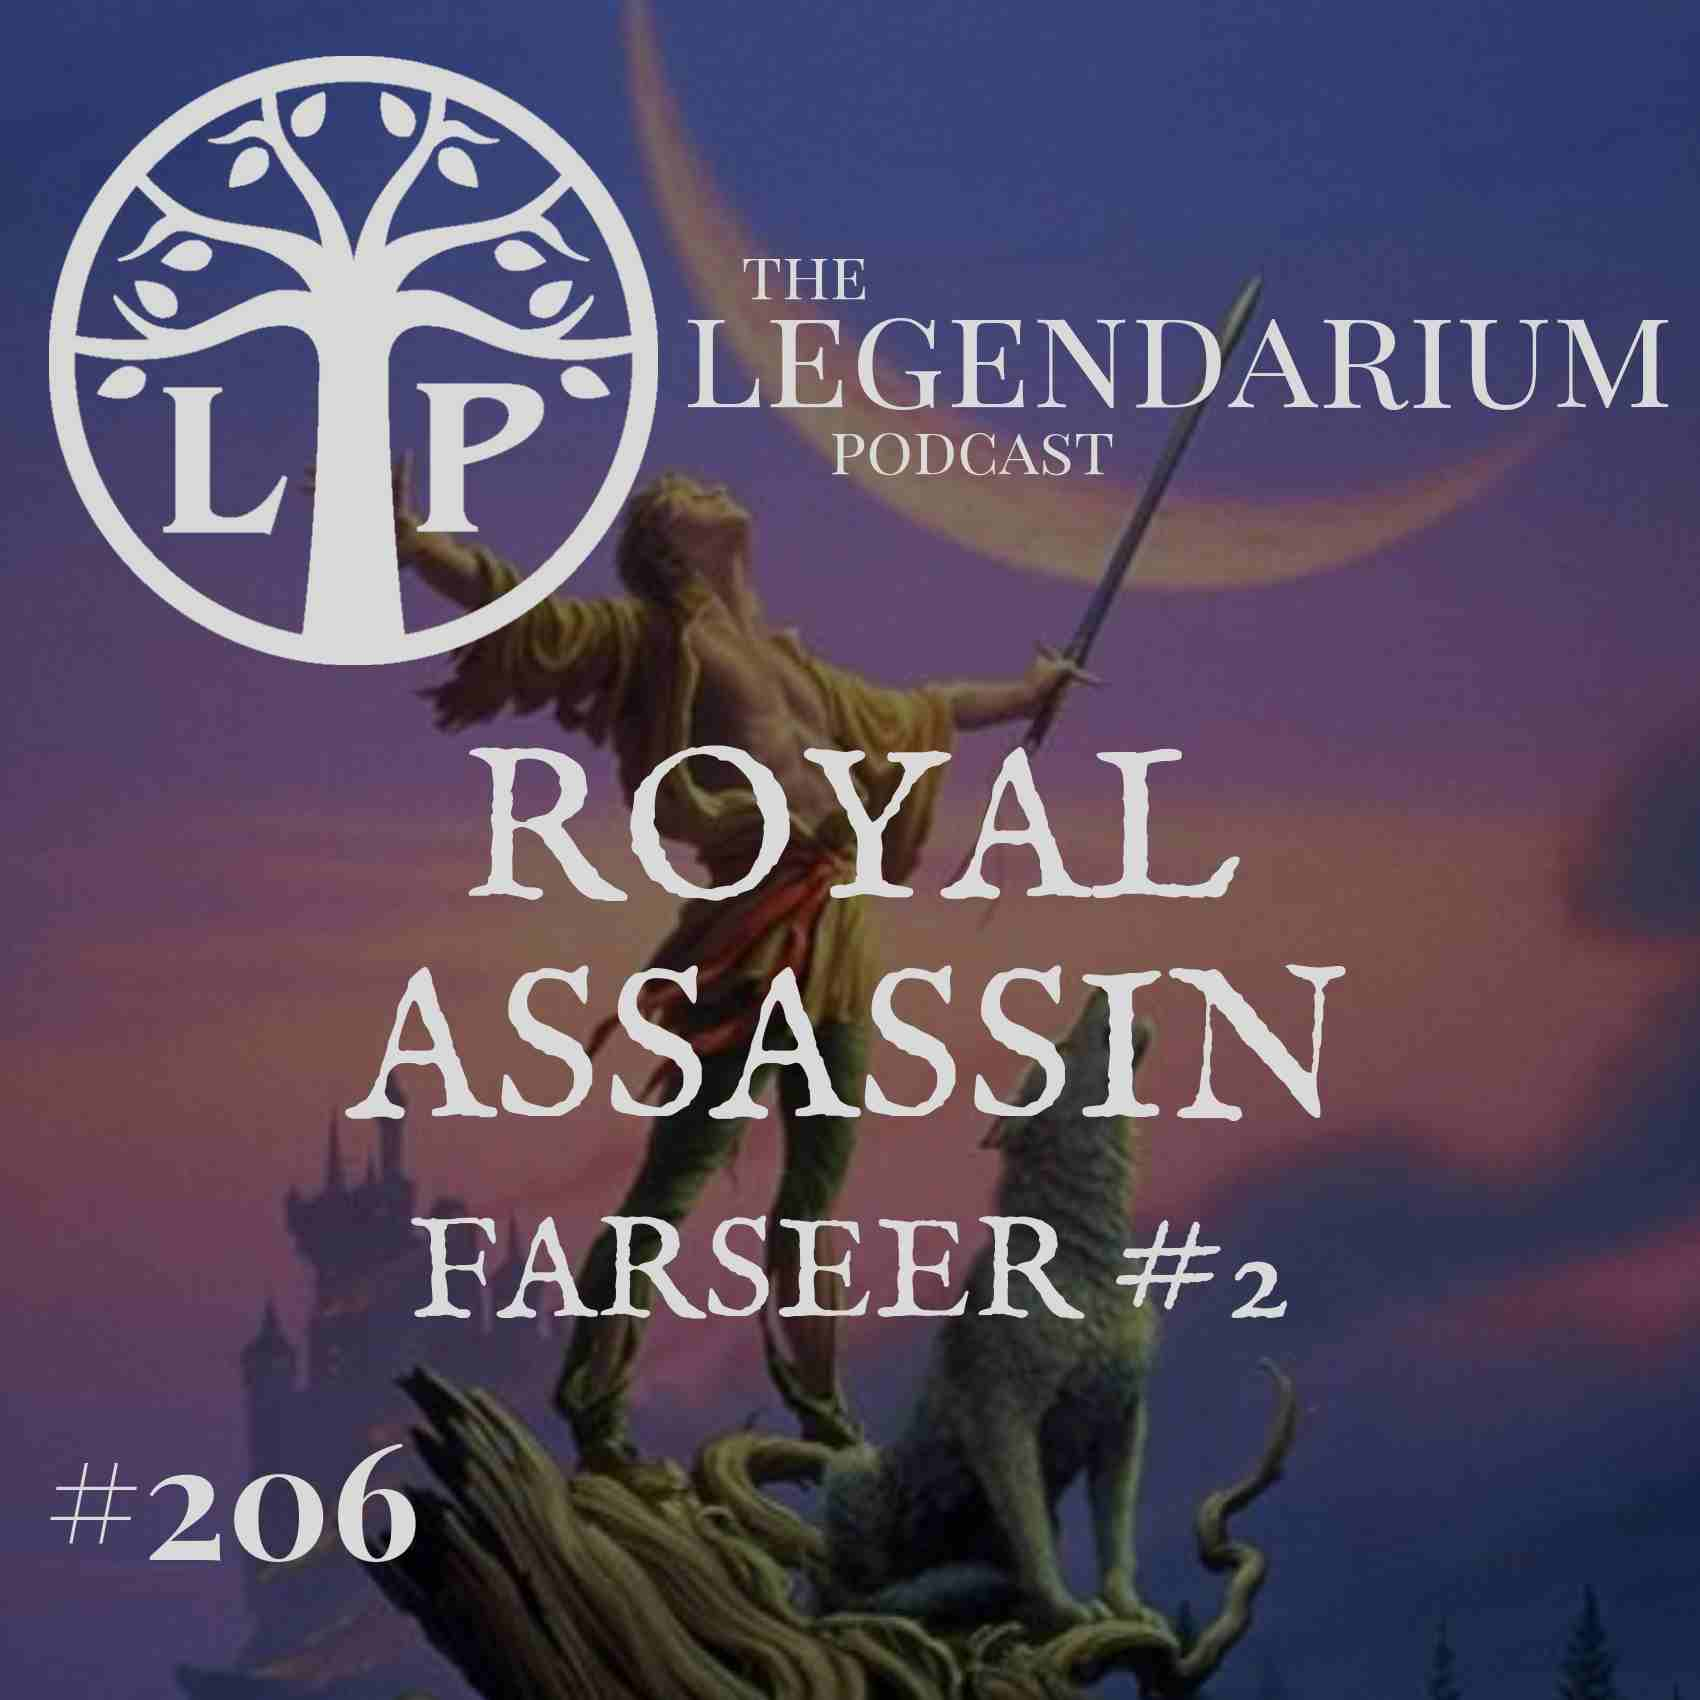 Royal Assassin Farseer 2